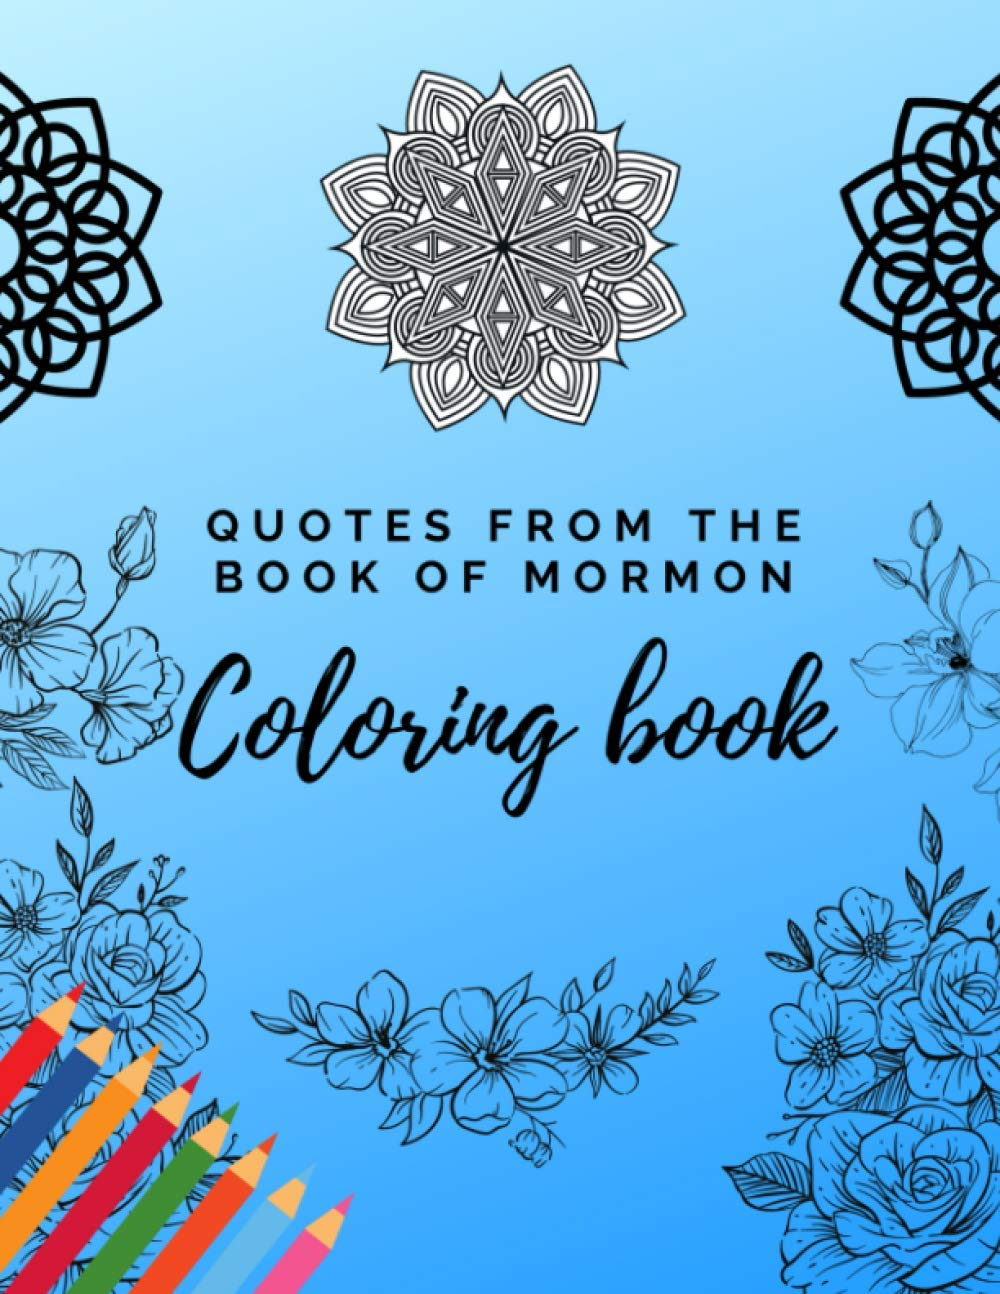 Amazon Com Quotes From The Book Of Mormon Coloring Book Lds Coloring Pages For Adults And Teens 9798550536223 Publishing Spiritualgifts Santos Gustavo Books